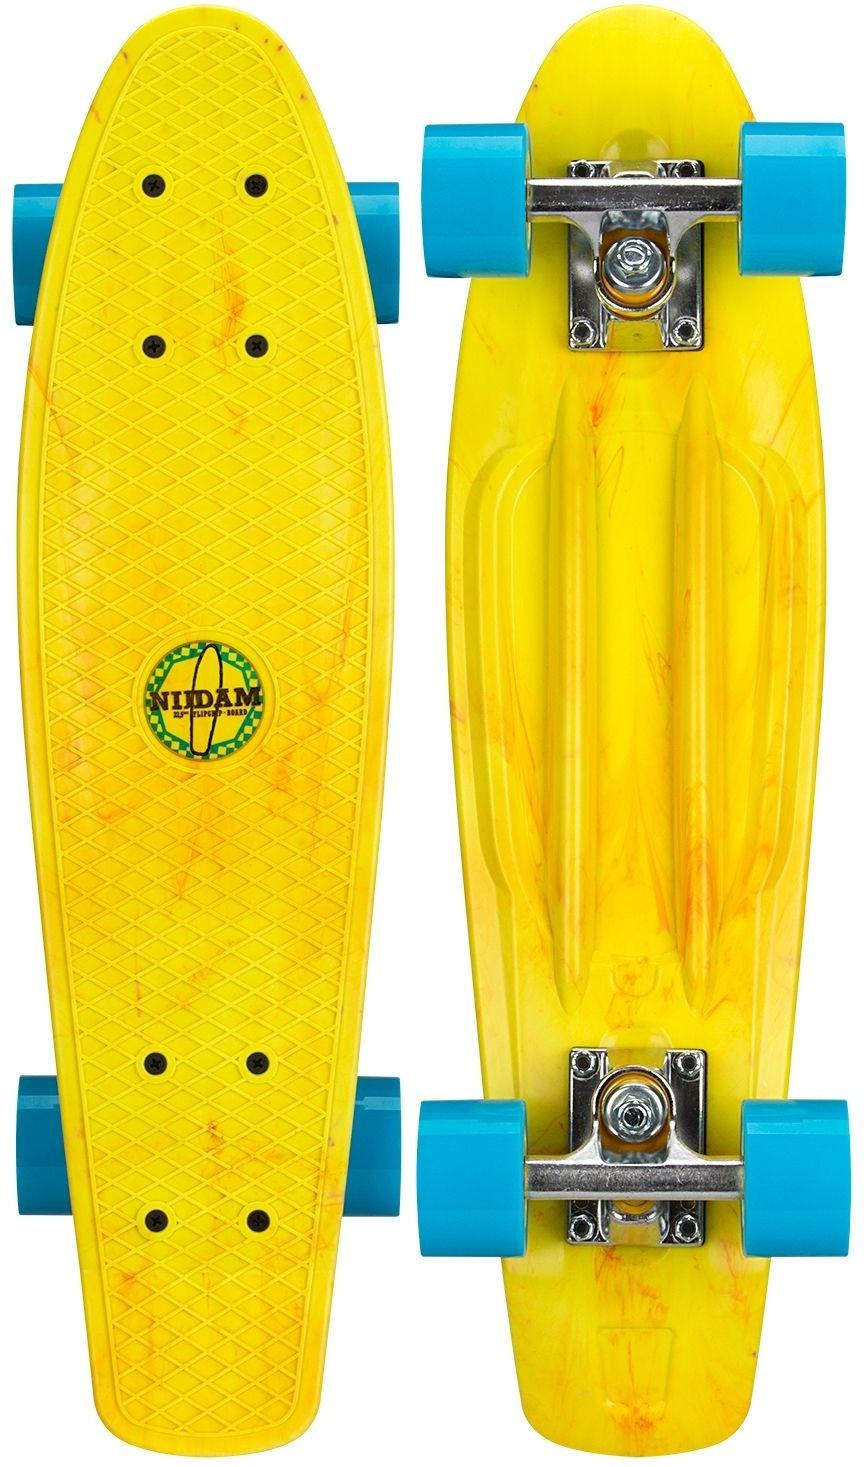 Fish mini cruiser deske